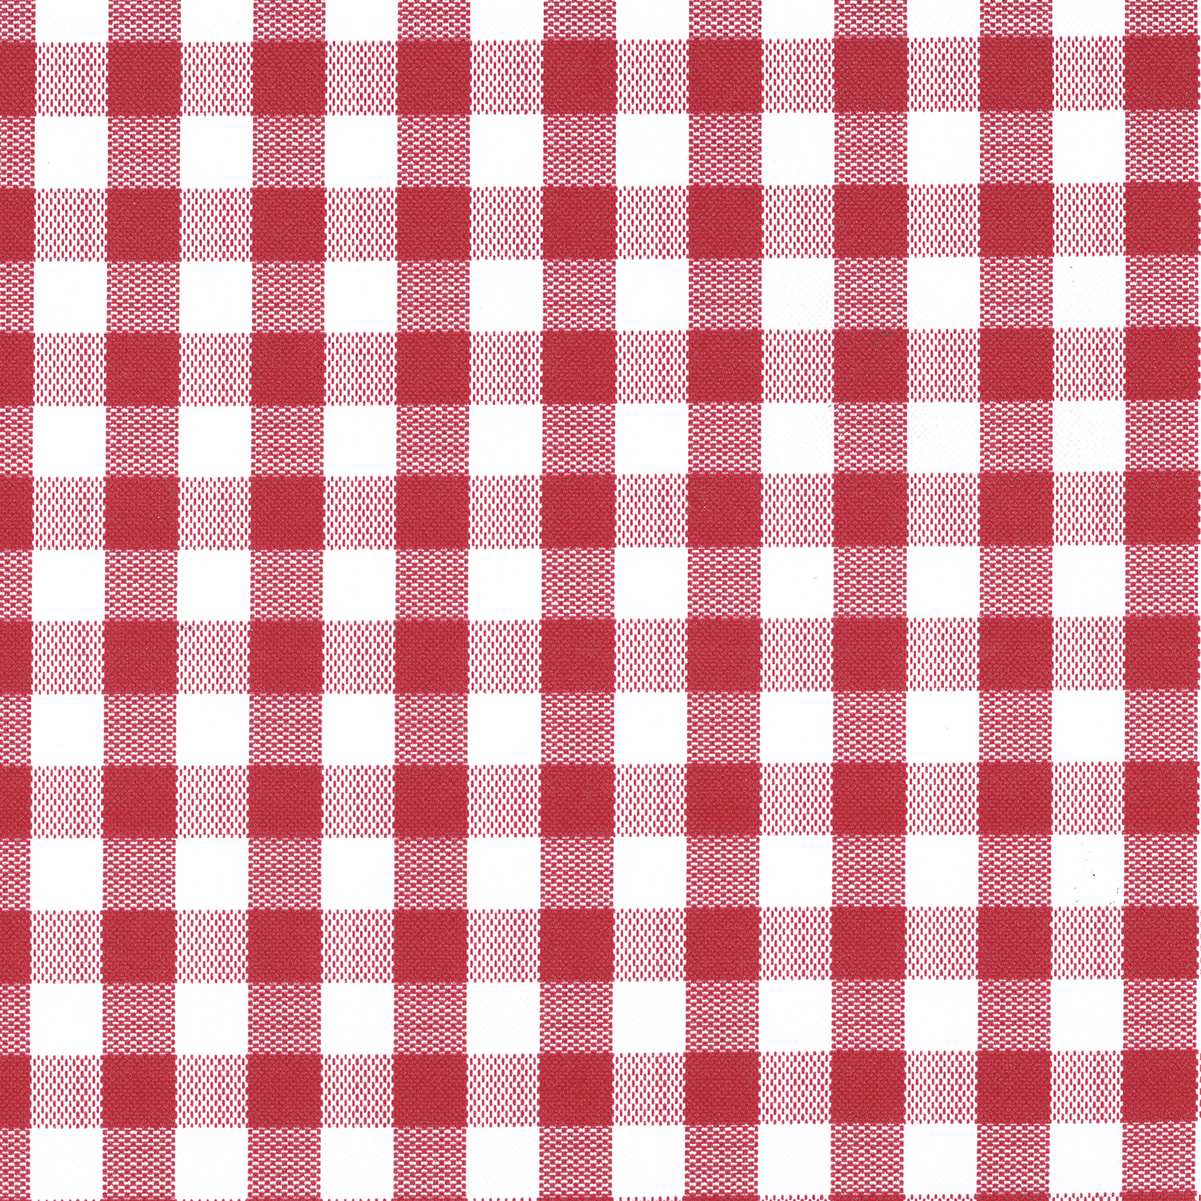 Valentine/'s Day Tablecloth Plaid Gingham Red//White Metallic Thread 2 Sizes NEW